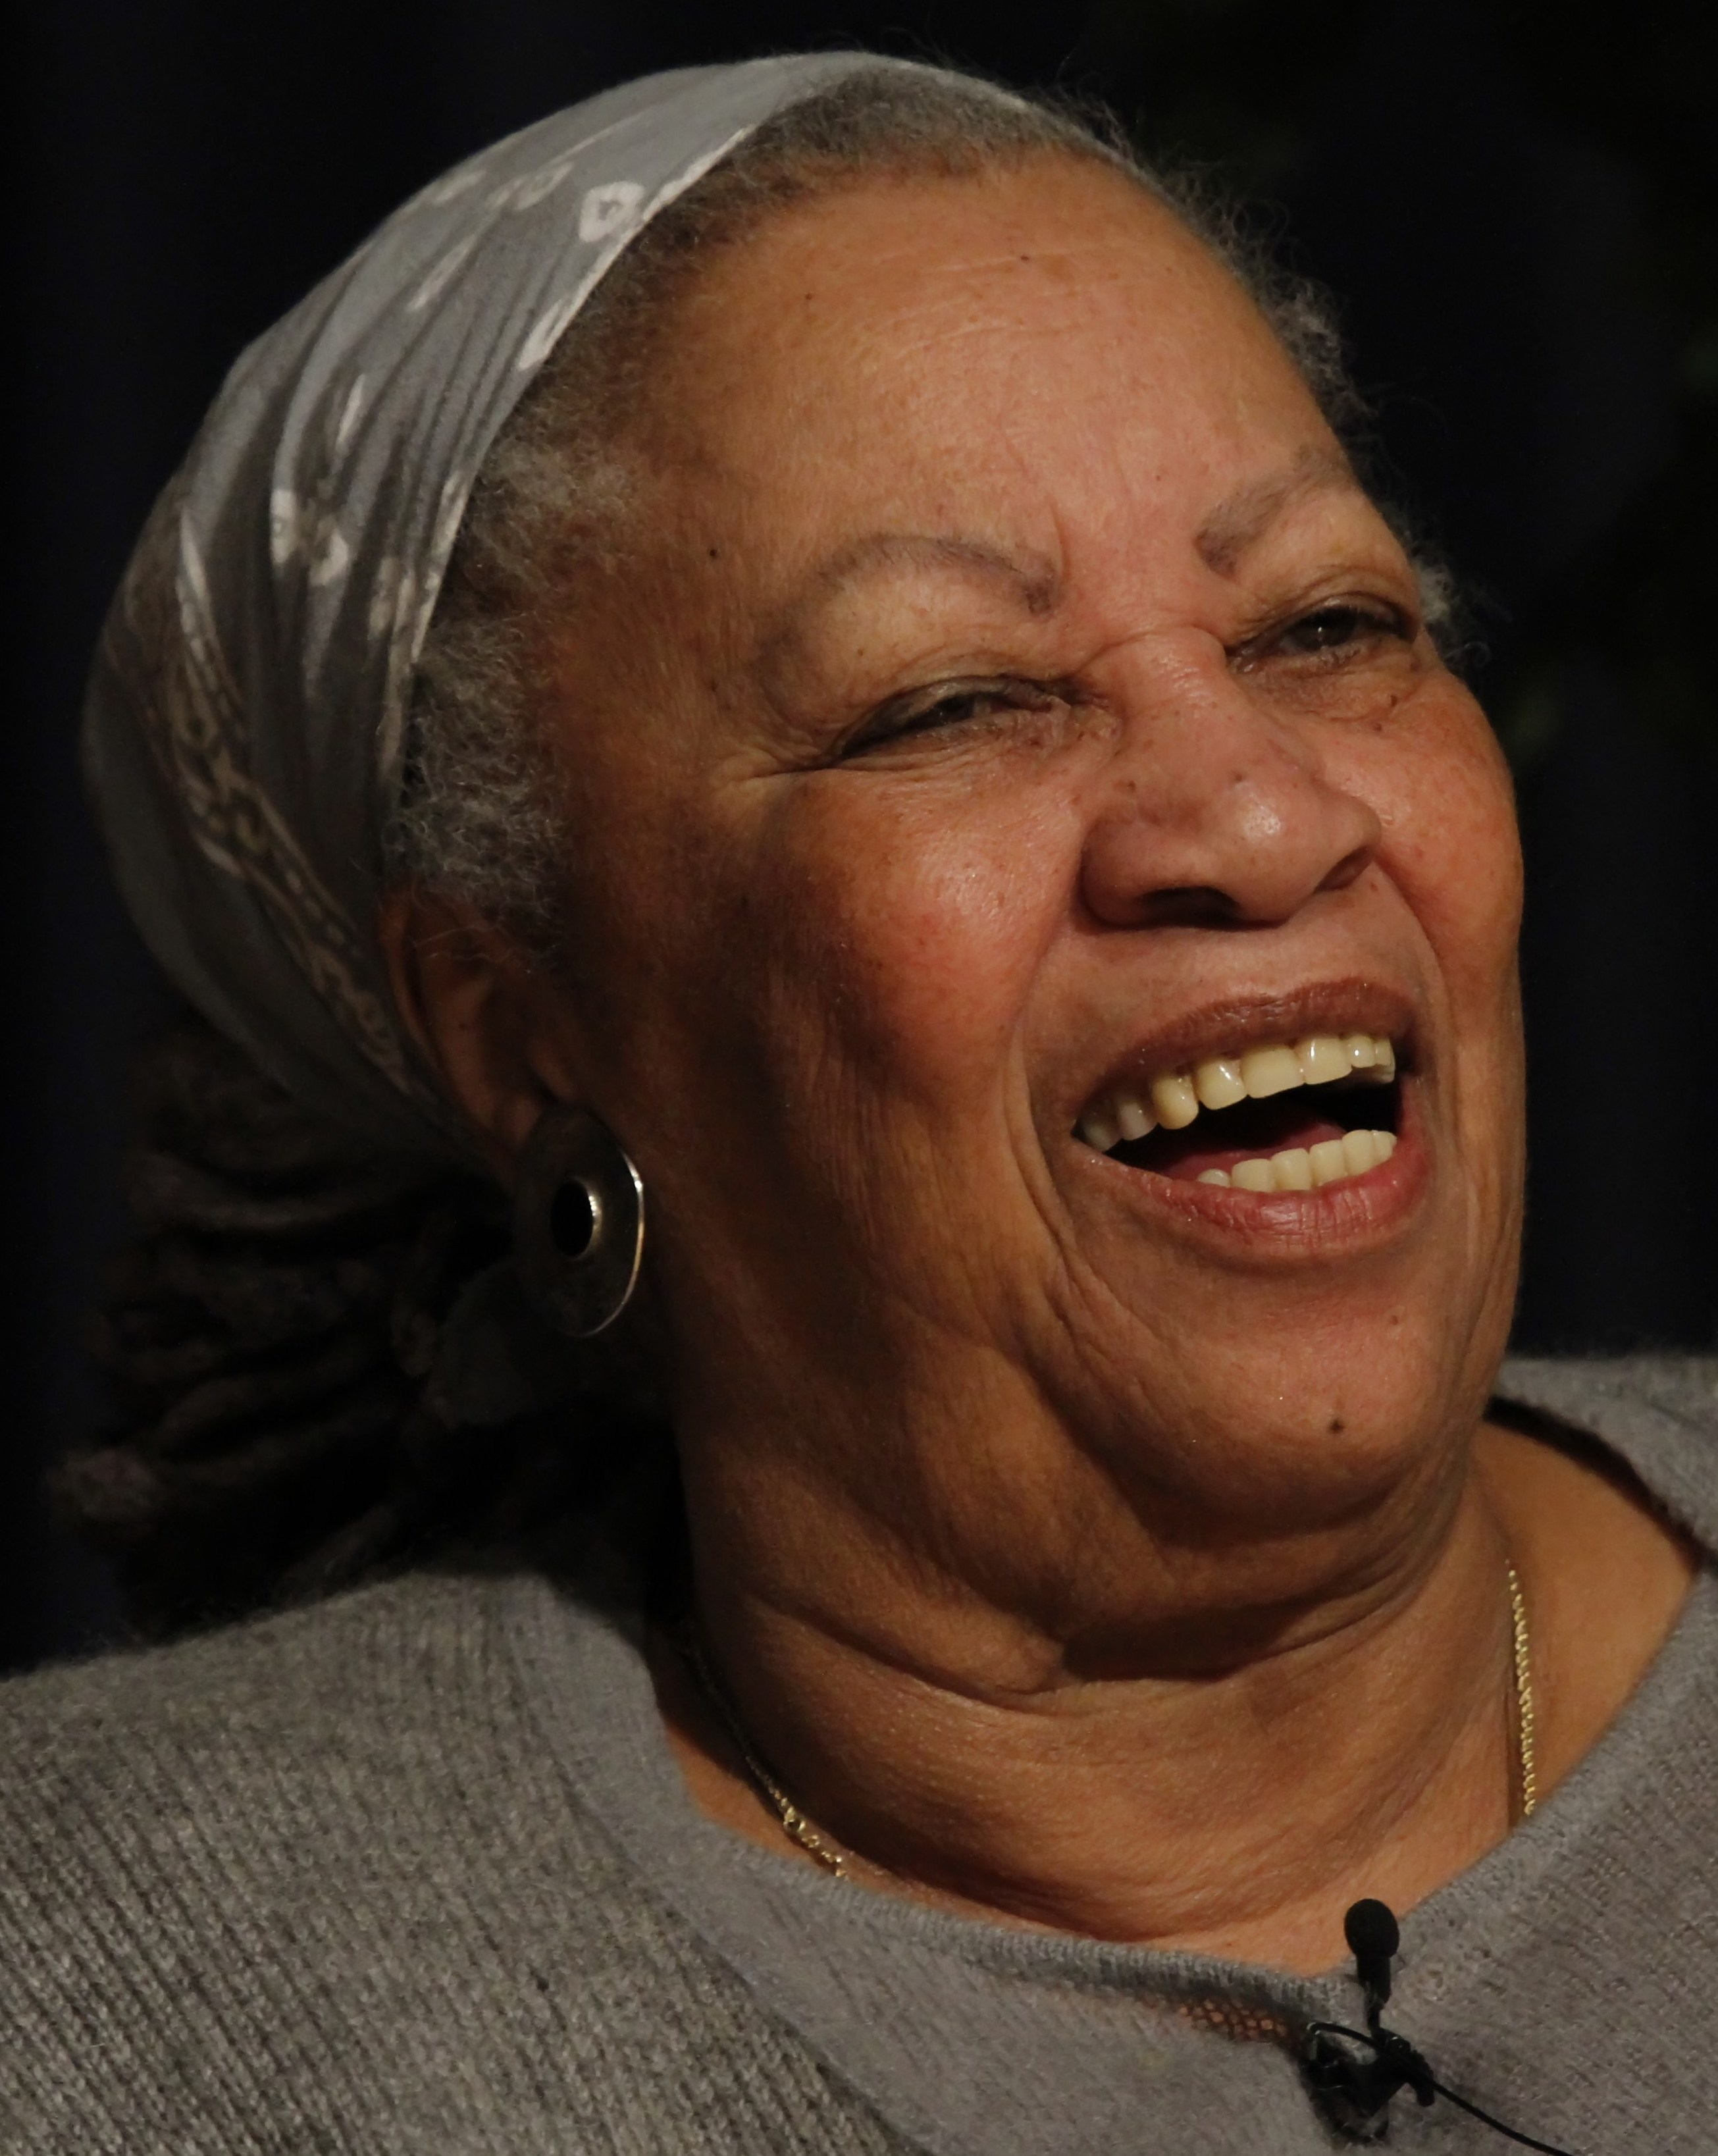 Toni Morrison, lecture at West Point Military Academy in March, 2013. (public domain)